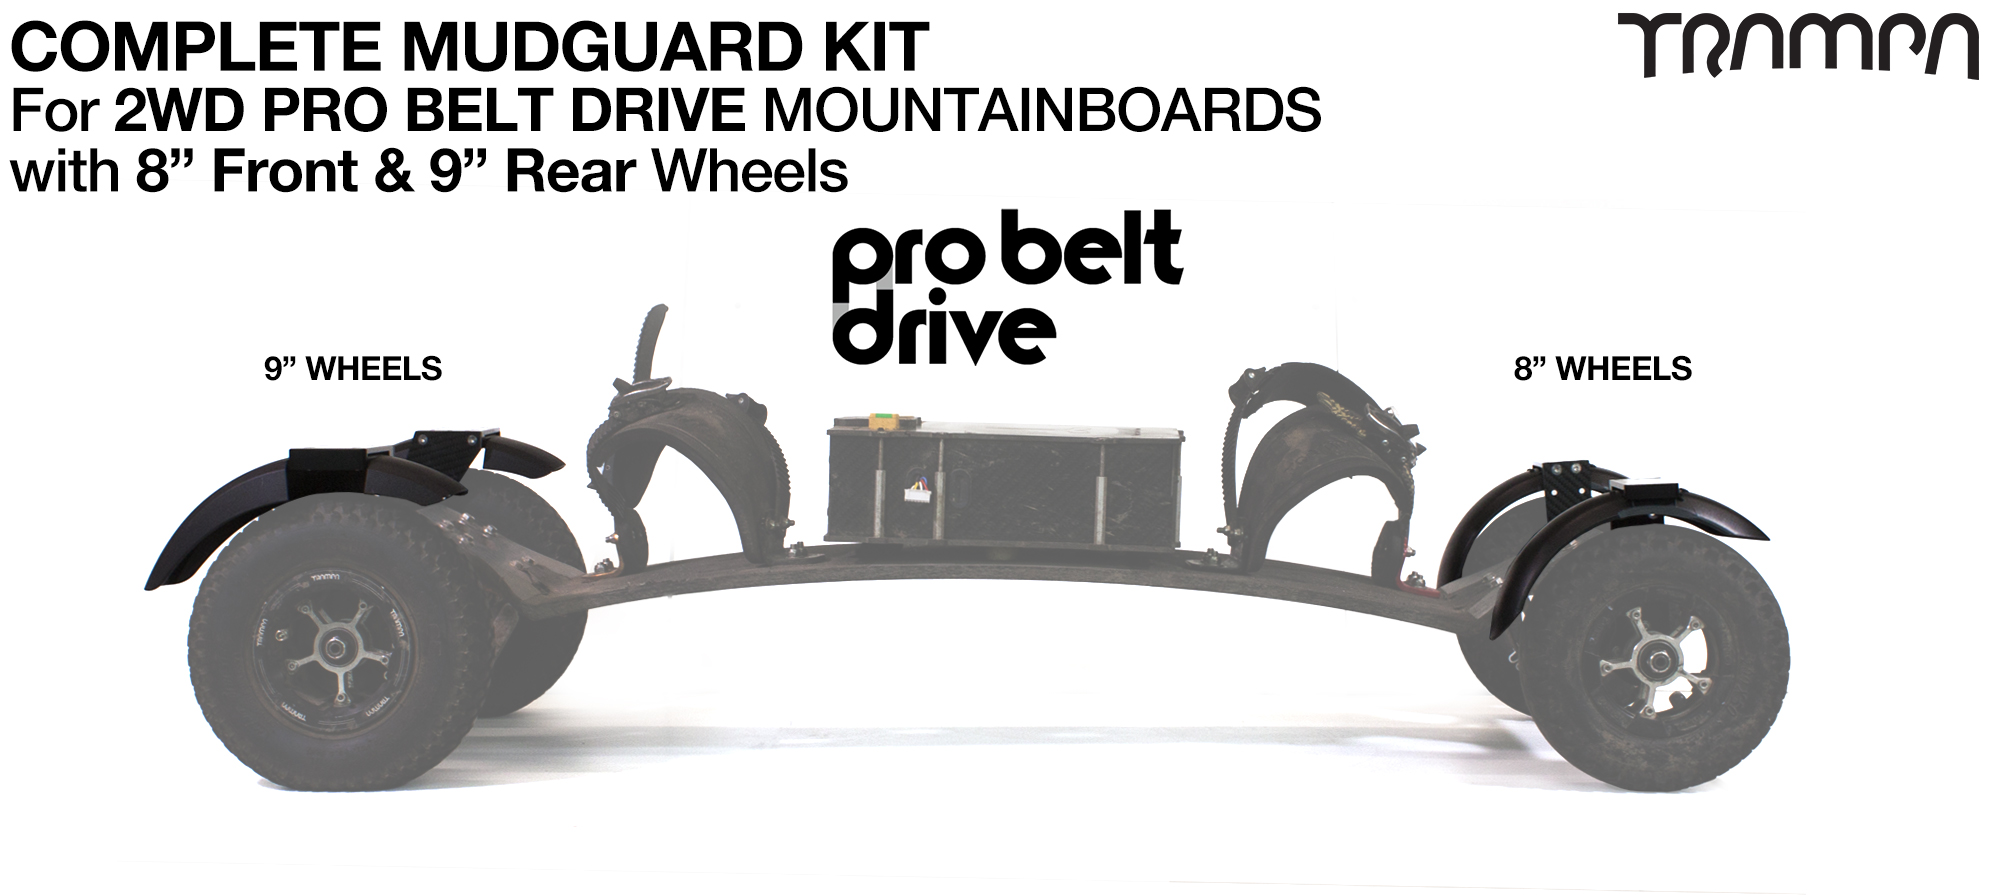 "Full Mudguard Kit for 2WD PRO BELT DRIVE Mountainboards - 8"" & 9"" Wheels"